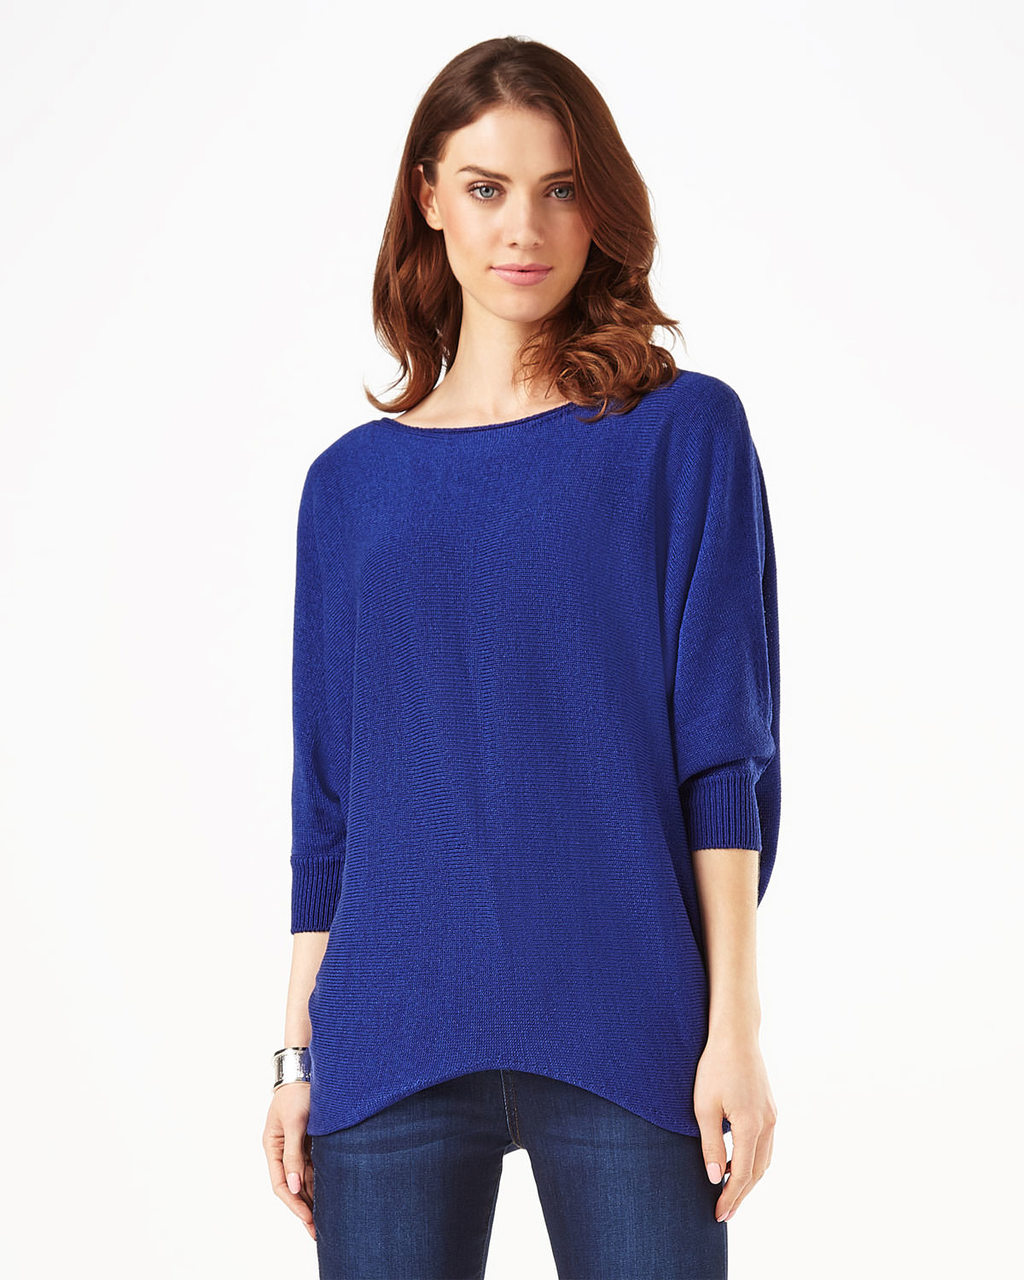 Tape Yarn Becca Batwing Jumper - neckline: round neck; sleeve style: dolman/batwing; pattern: plain; length: below the bottom; style: standard; predominant colour: royal blue; occasions: casual; fibres: acrylic - mix; fit: loose; sleeve length: 3/4 length; texture group: knits/crochet; pattern type: knitted - fine stitch; season: s/s 2016; wardrobe: highlight